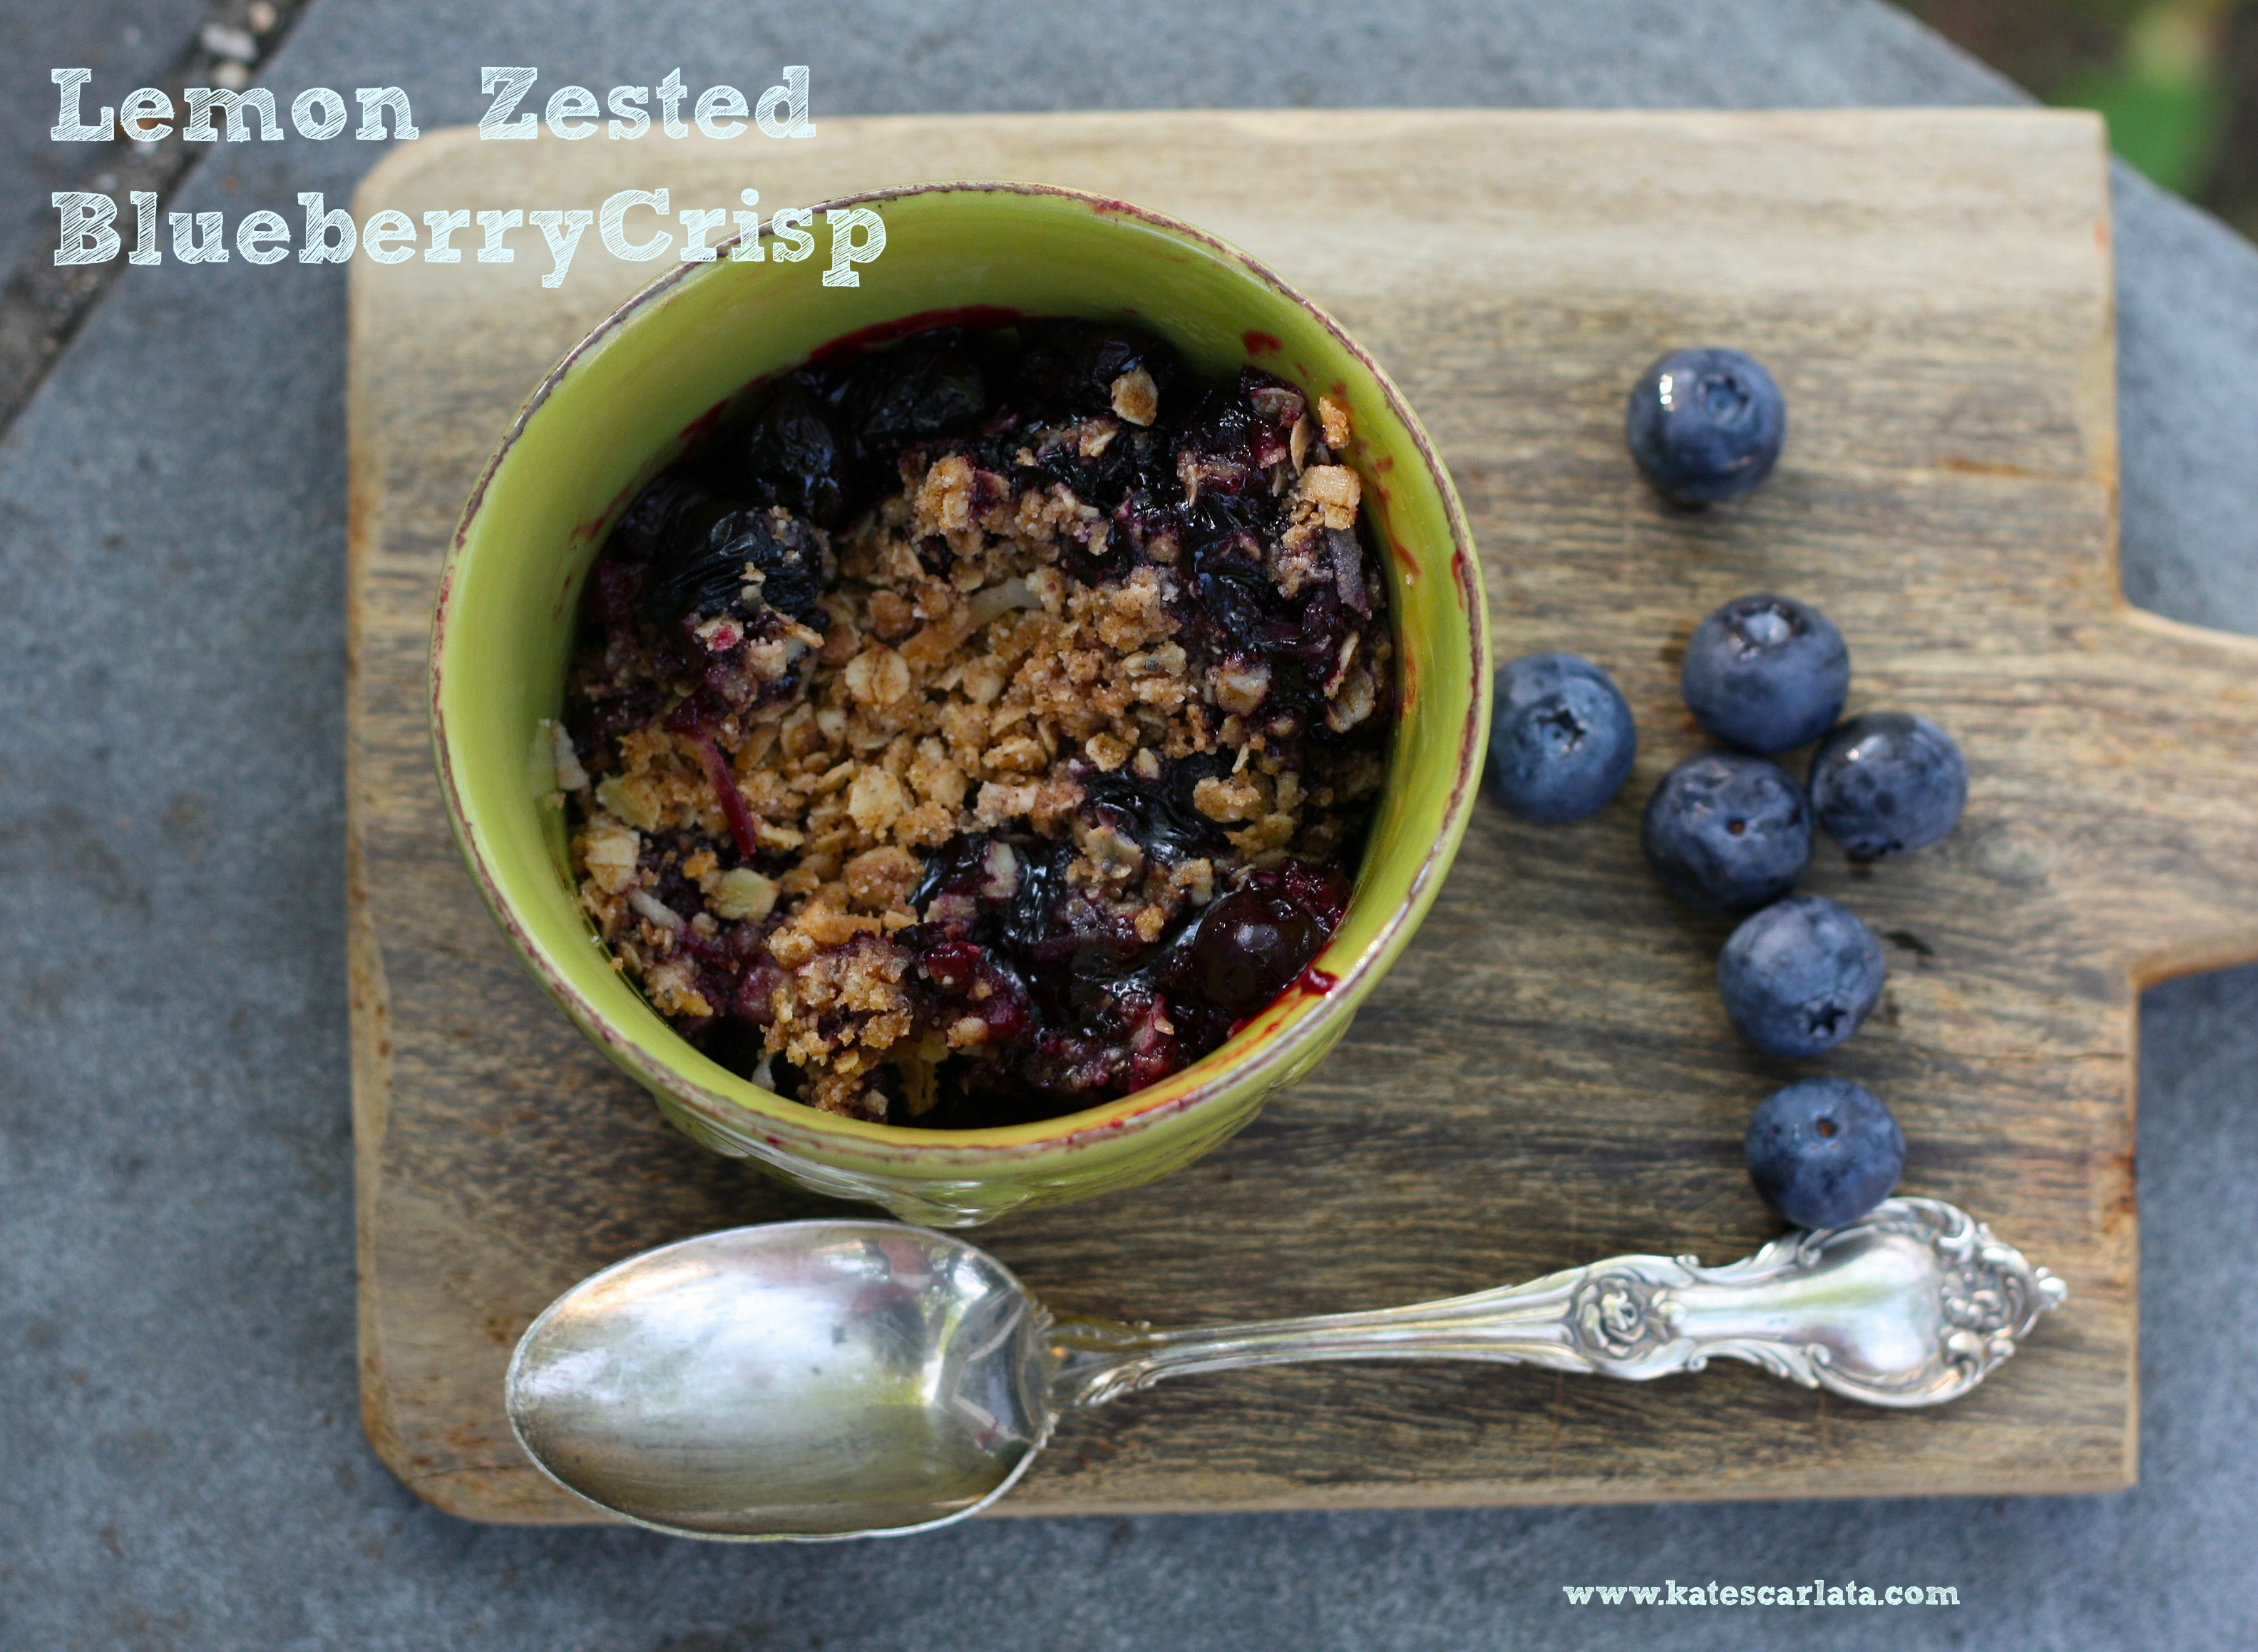 lemon zested blueberry crisp ready to eat